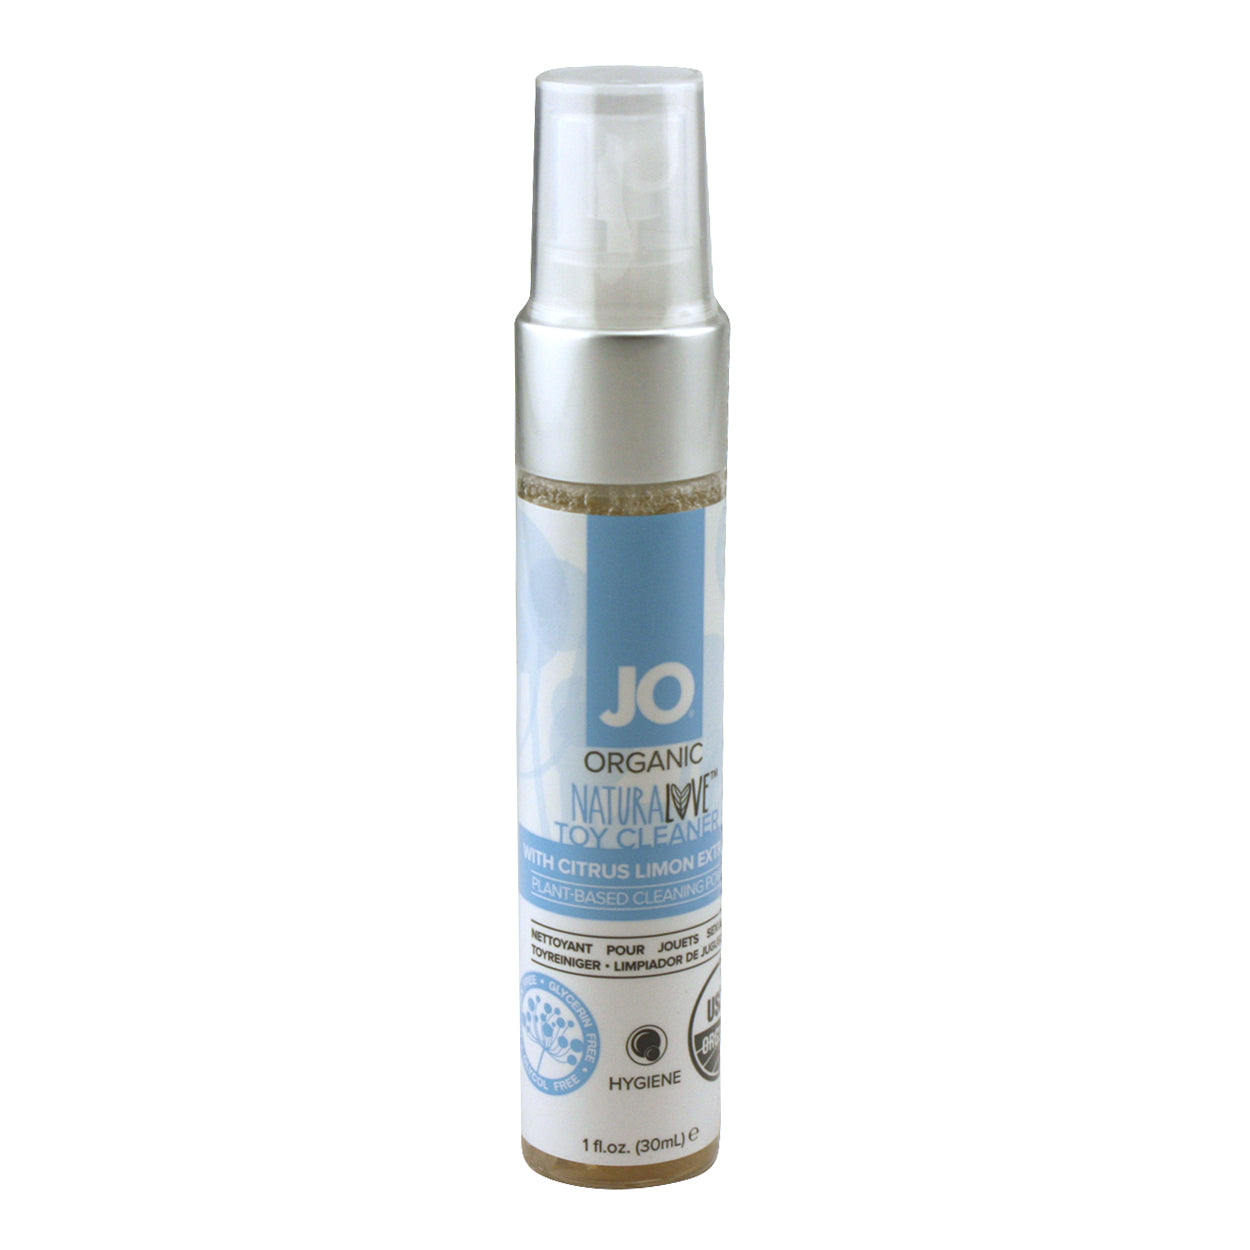 Organic Sex Toy Cleaner